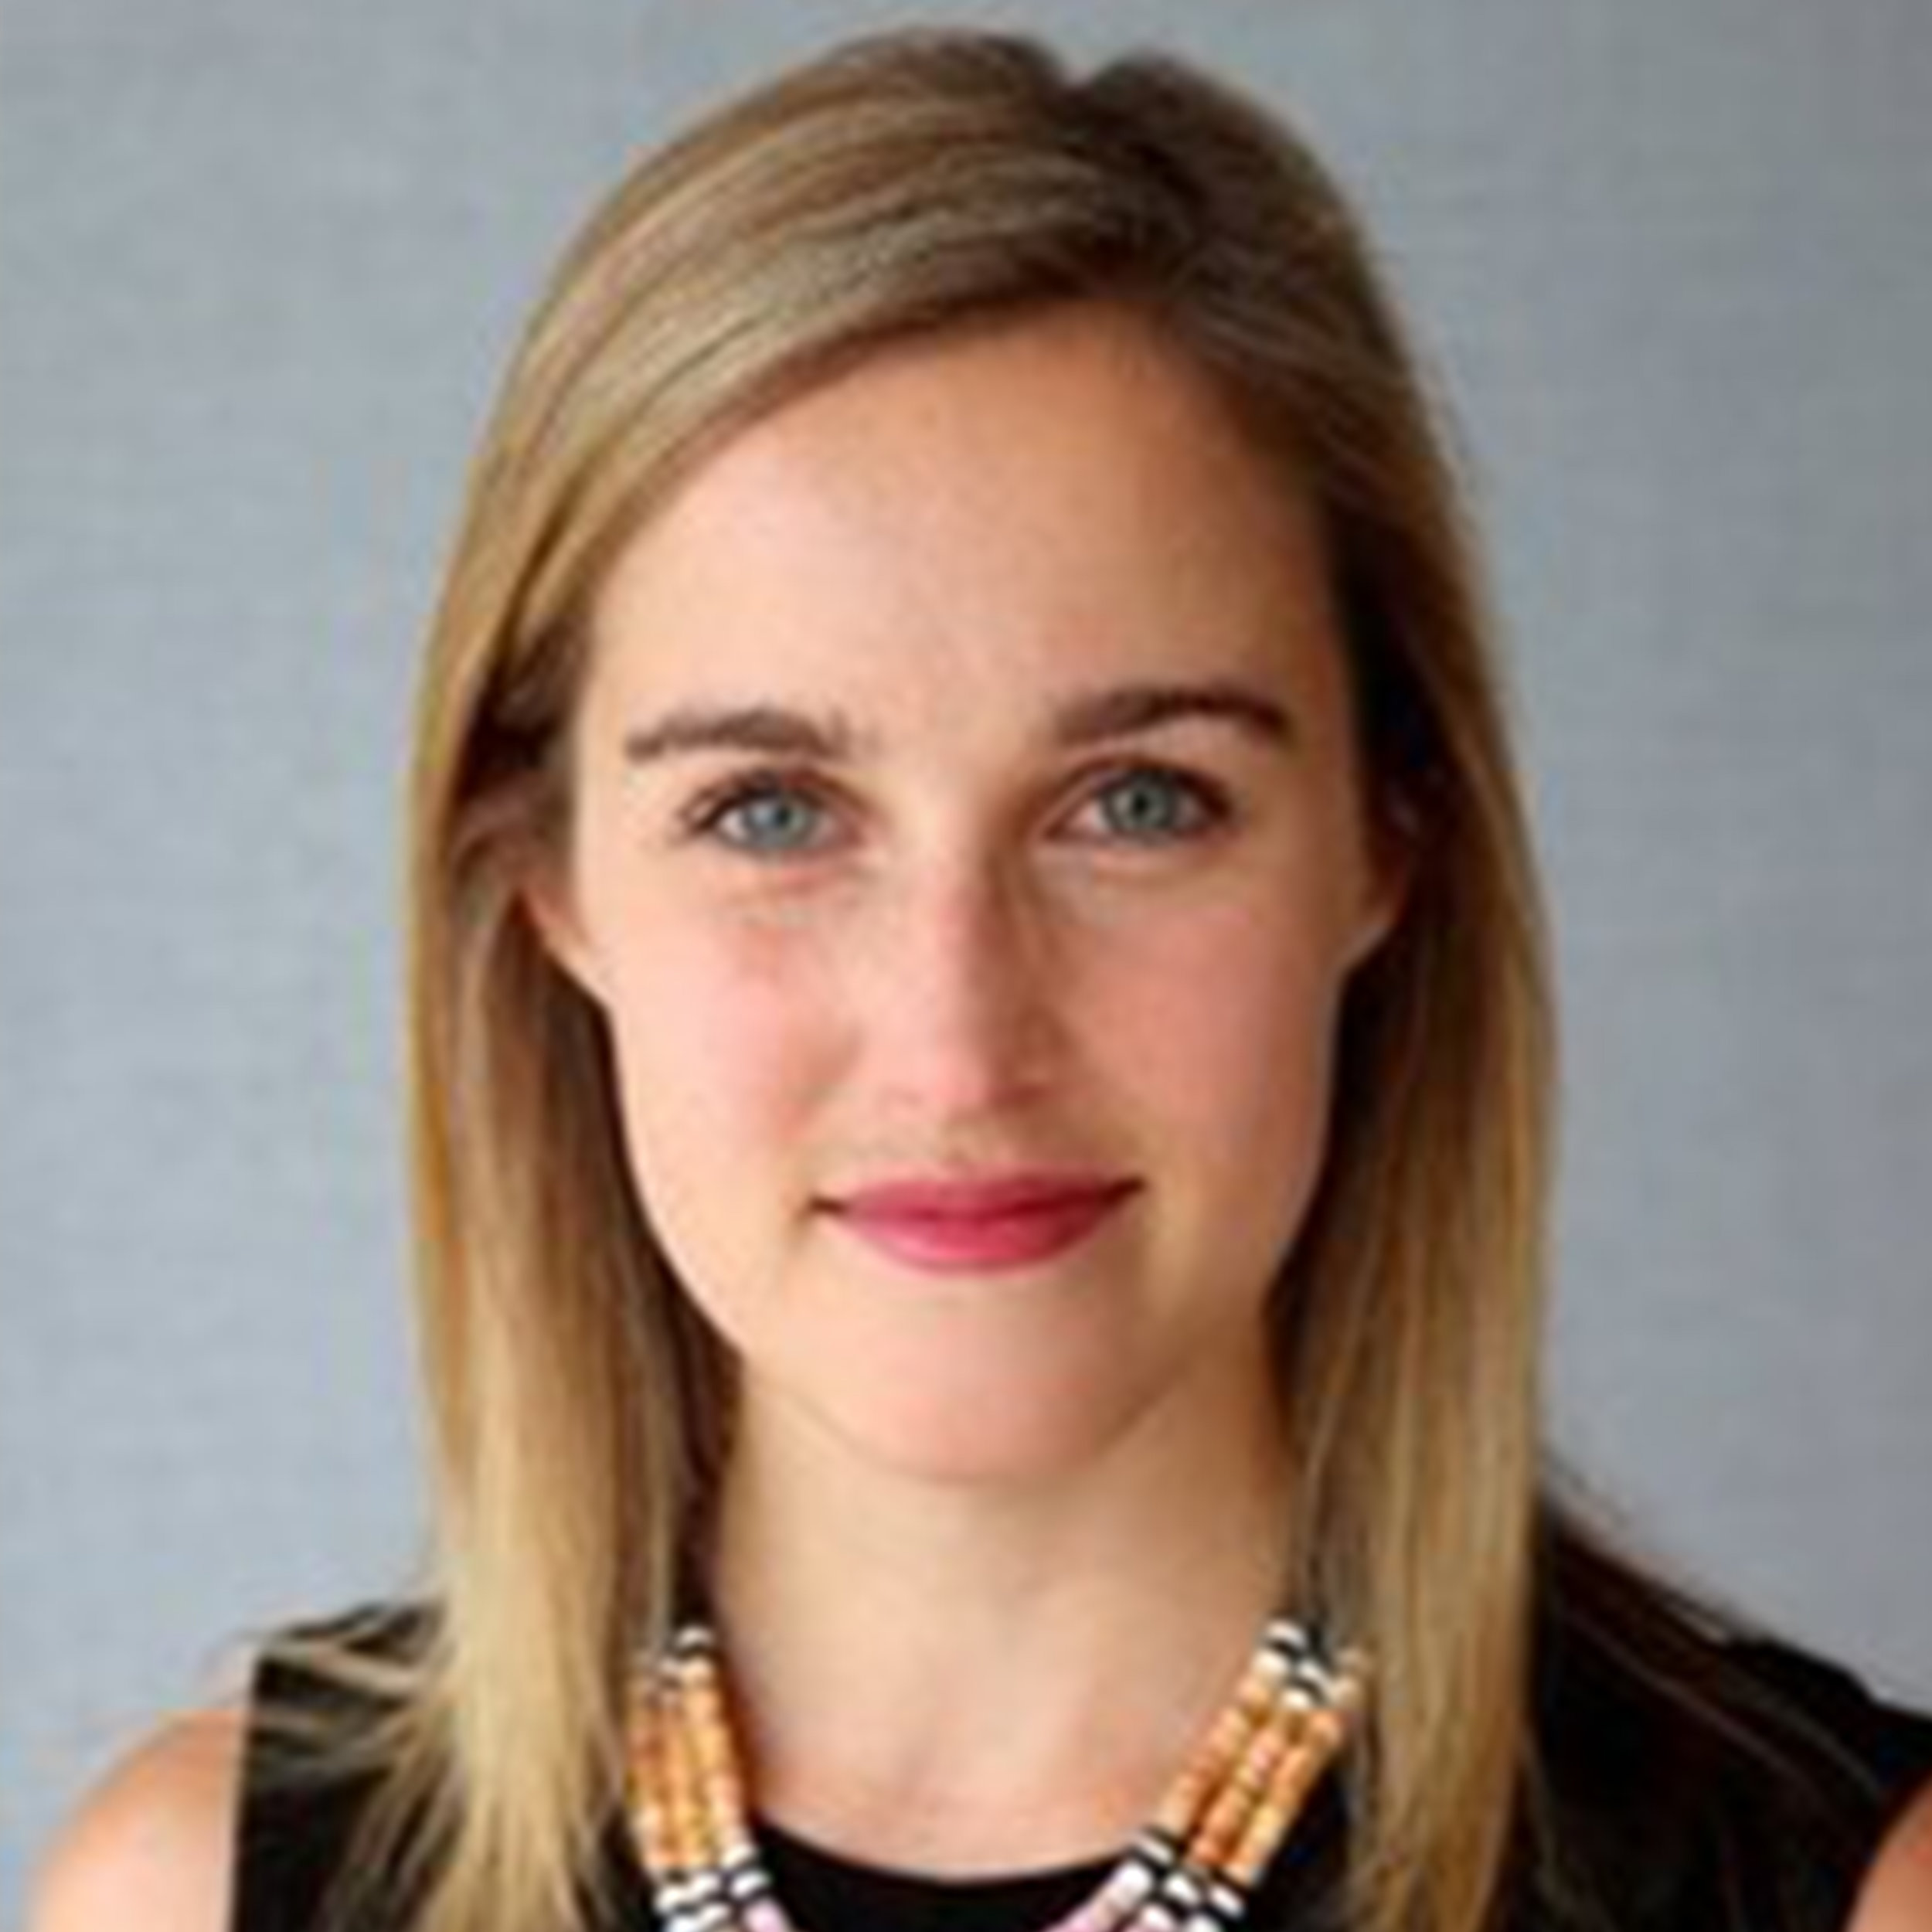 DR. BETHANY HOLT  (2013-2017 Past TIME UQ MAP Convenor; President, AMSA Global Health Representative and Director)